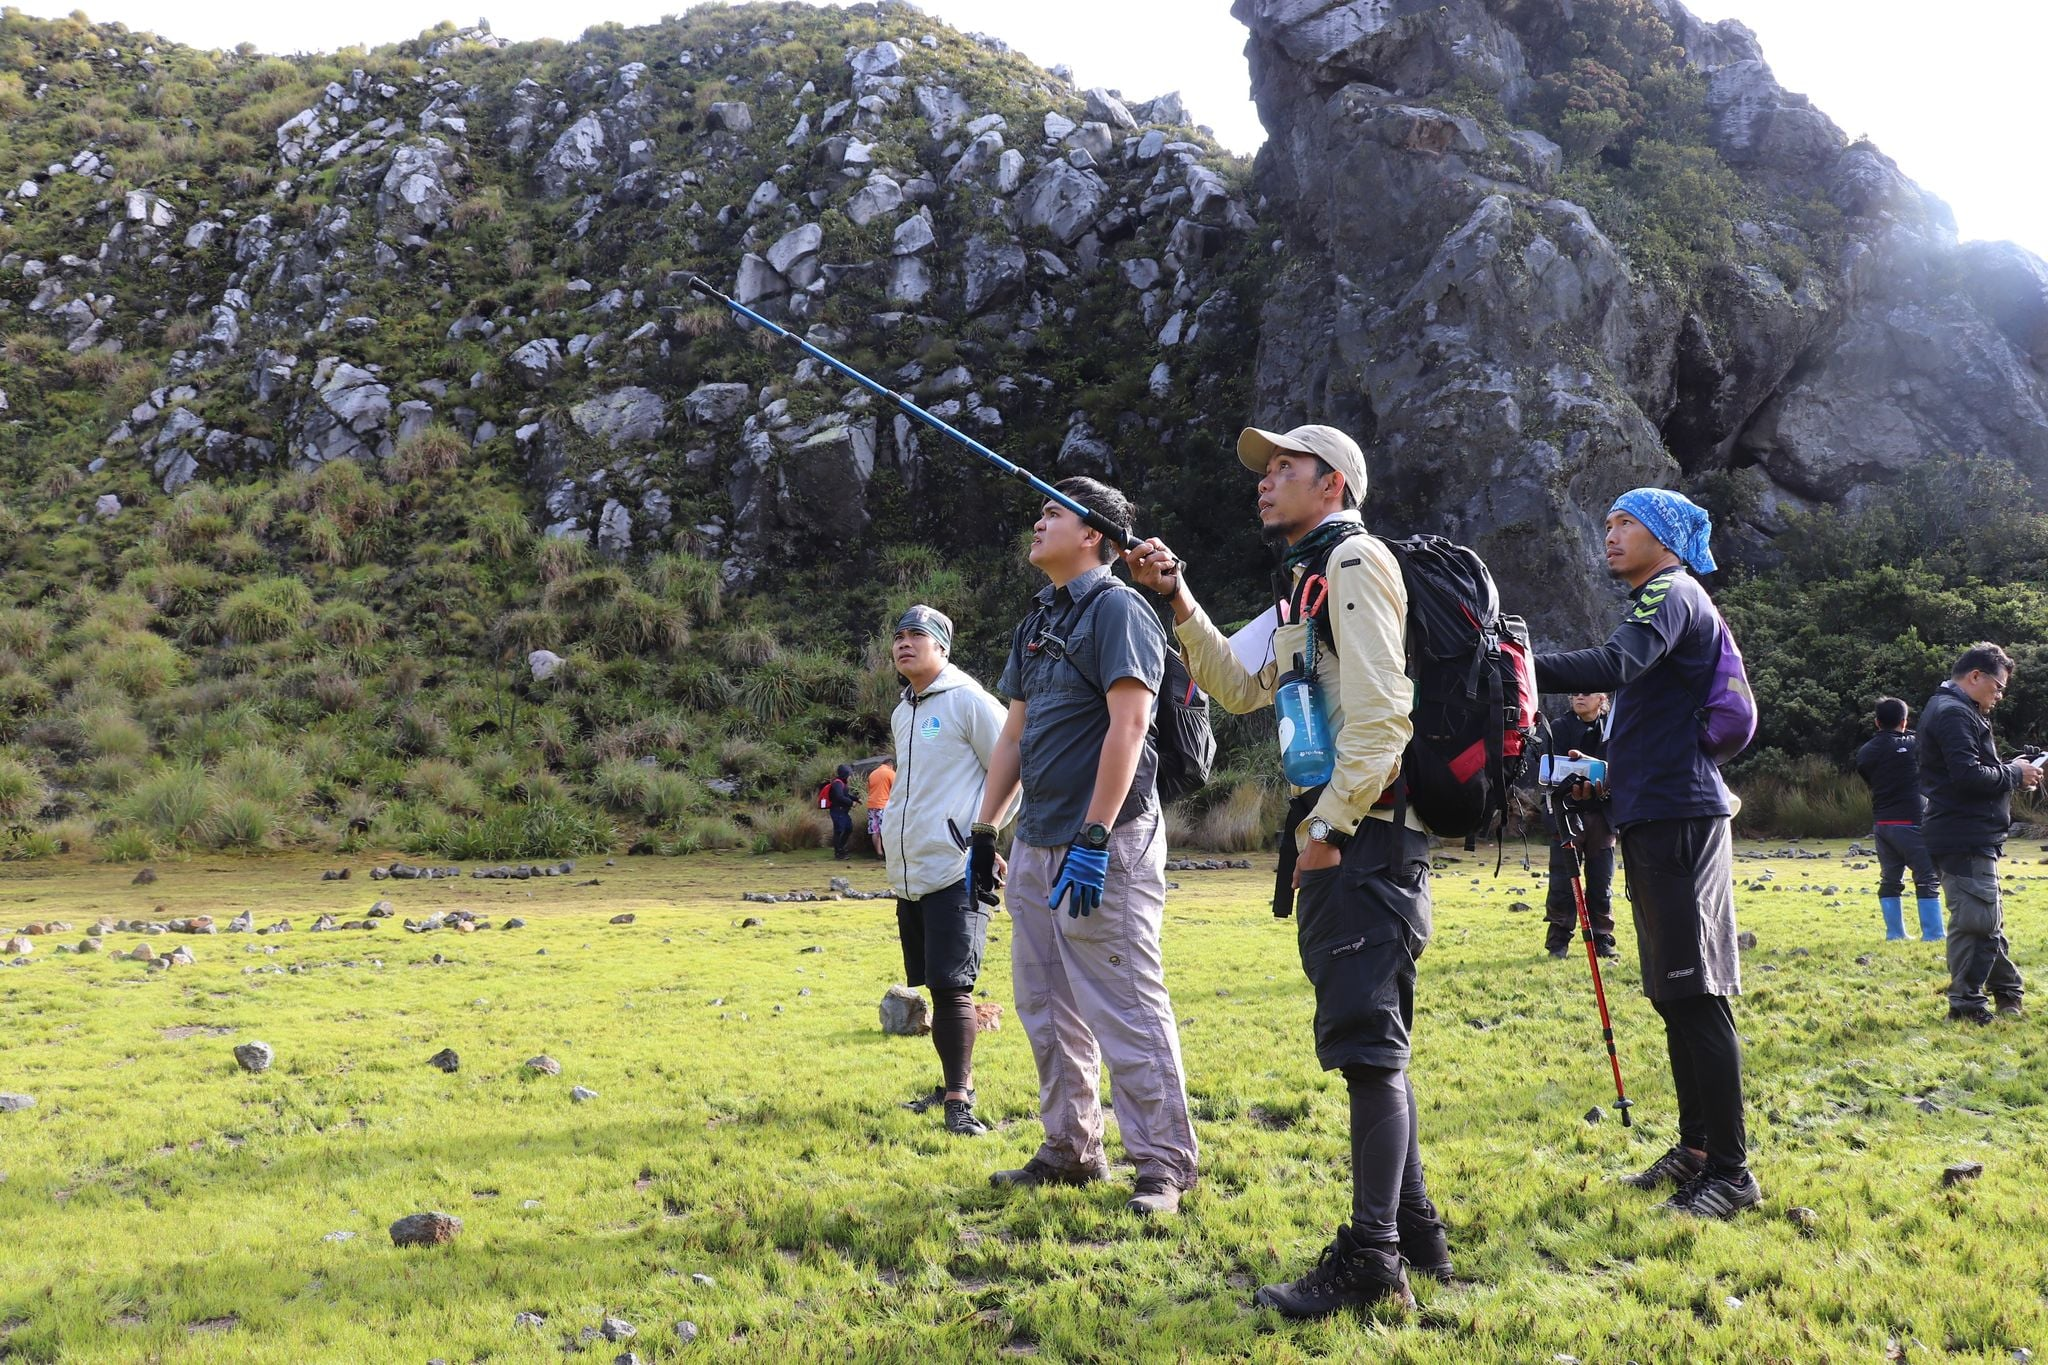 DENR Team climbing Mt. Apo to personally observe and assess the condition of the mountain